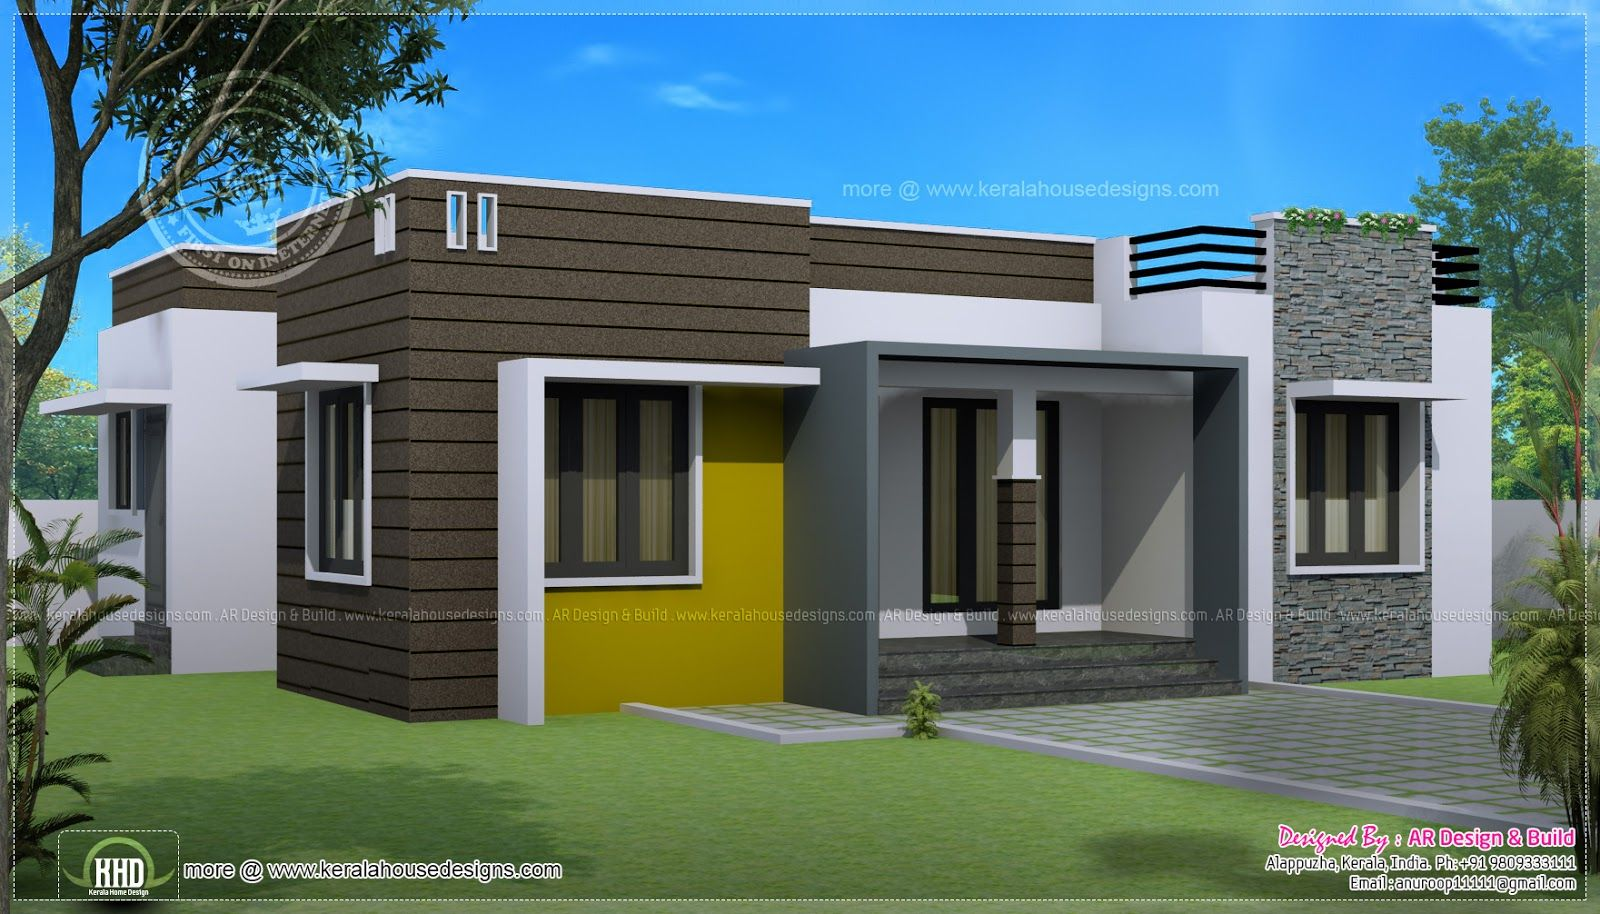 Sq ft house provision stair future expansion home kerala for Single story 4 bedroom modern house plans